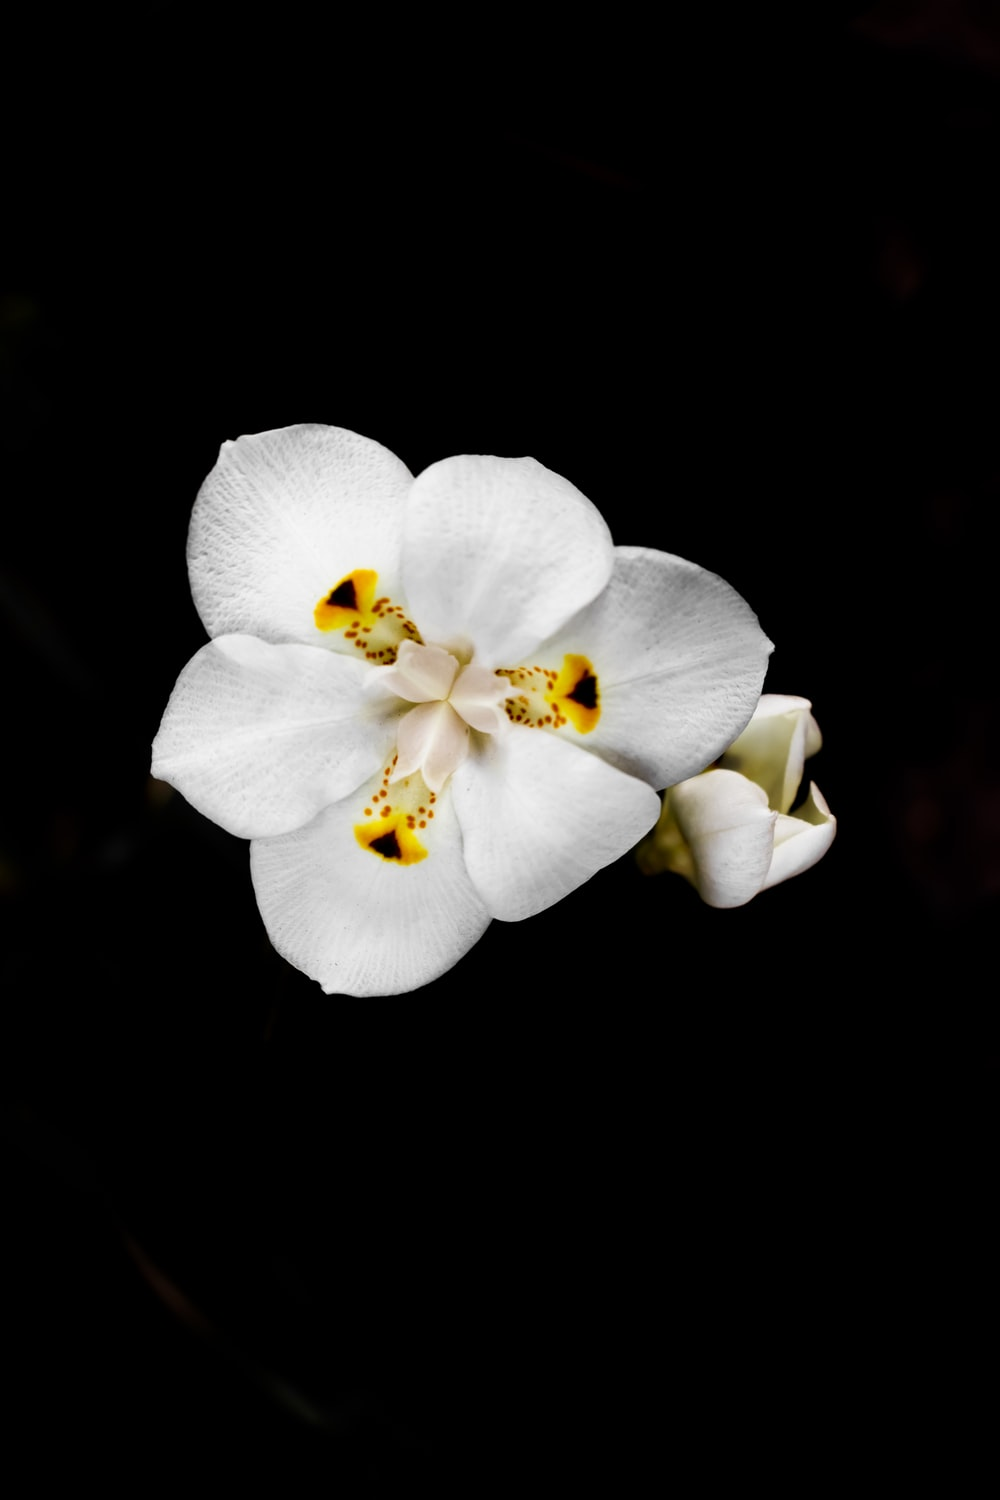 white flower in black background